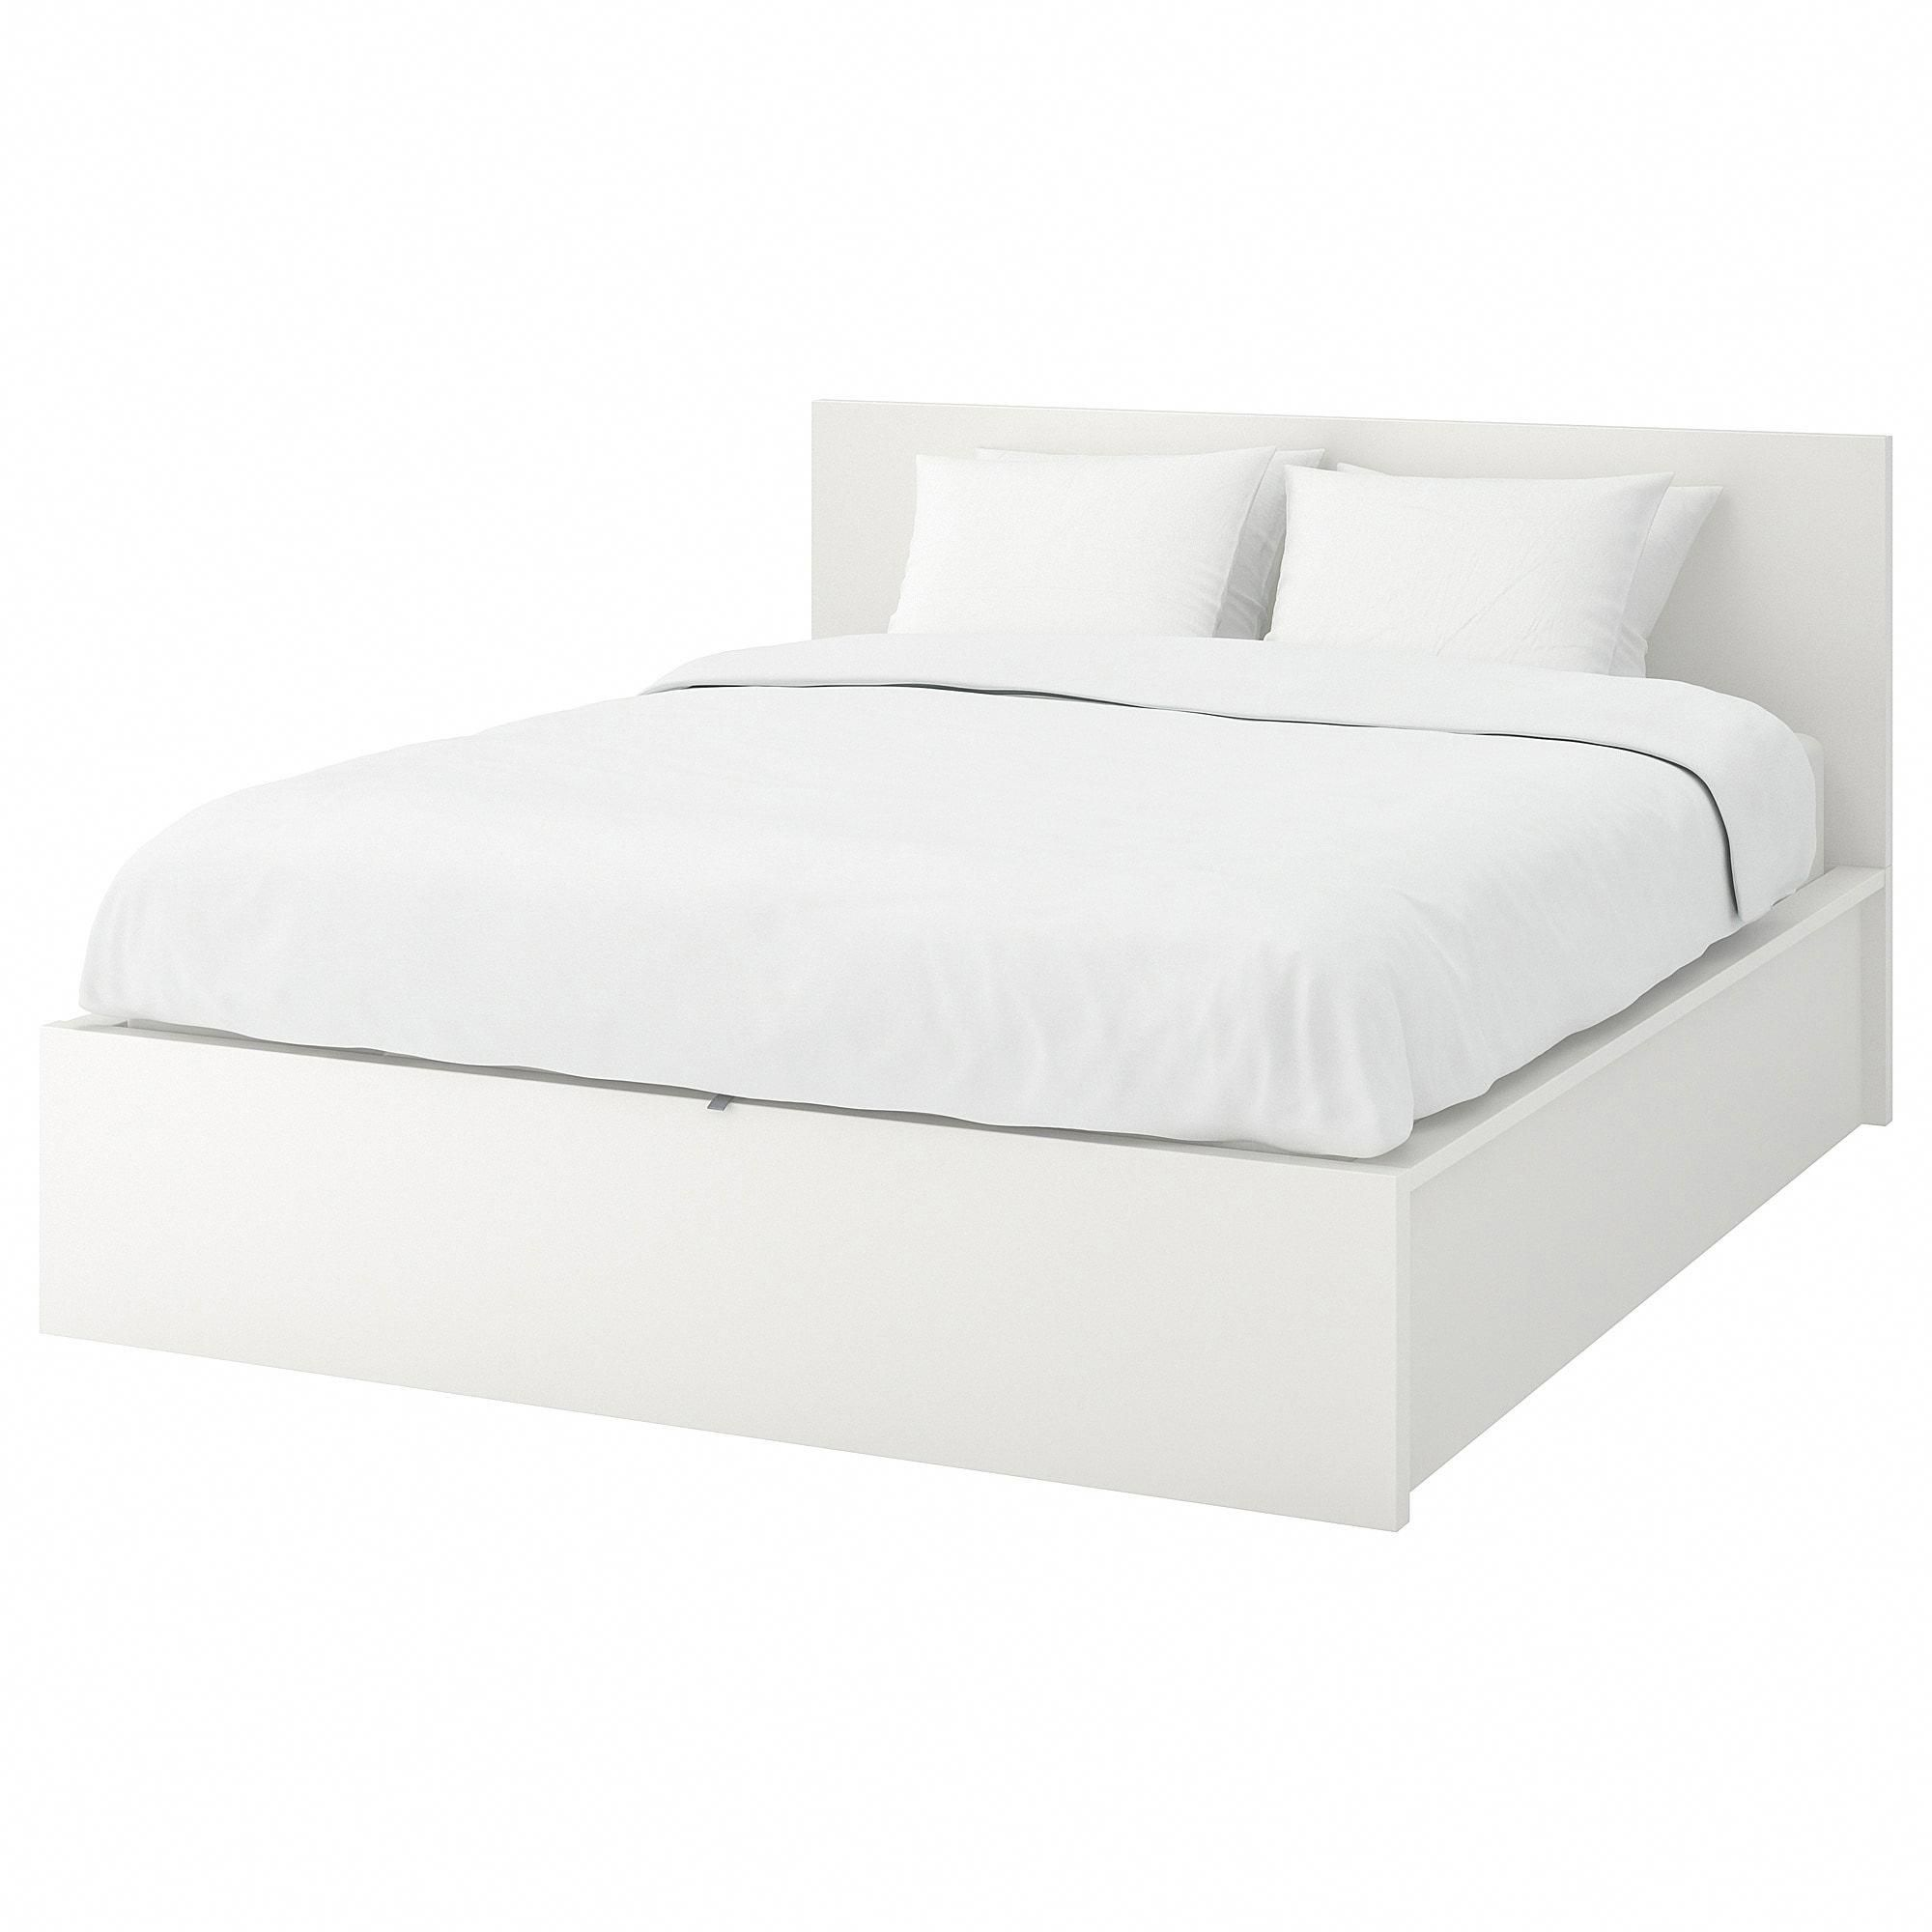 Malm Storage Bed White Full Double Ikea Ikeabedroomideas Bed Frame With Storage Ikea Bed Malm Bed